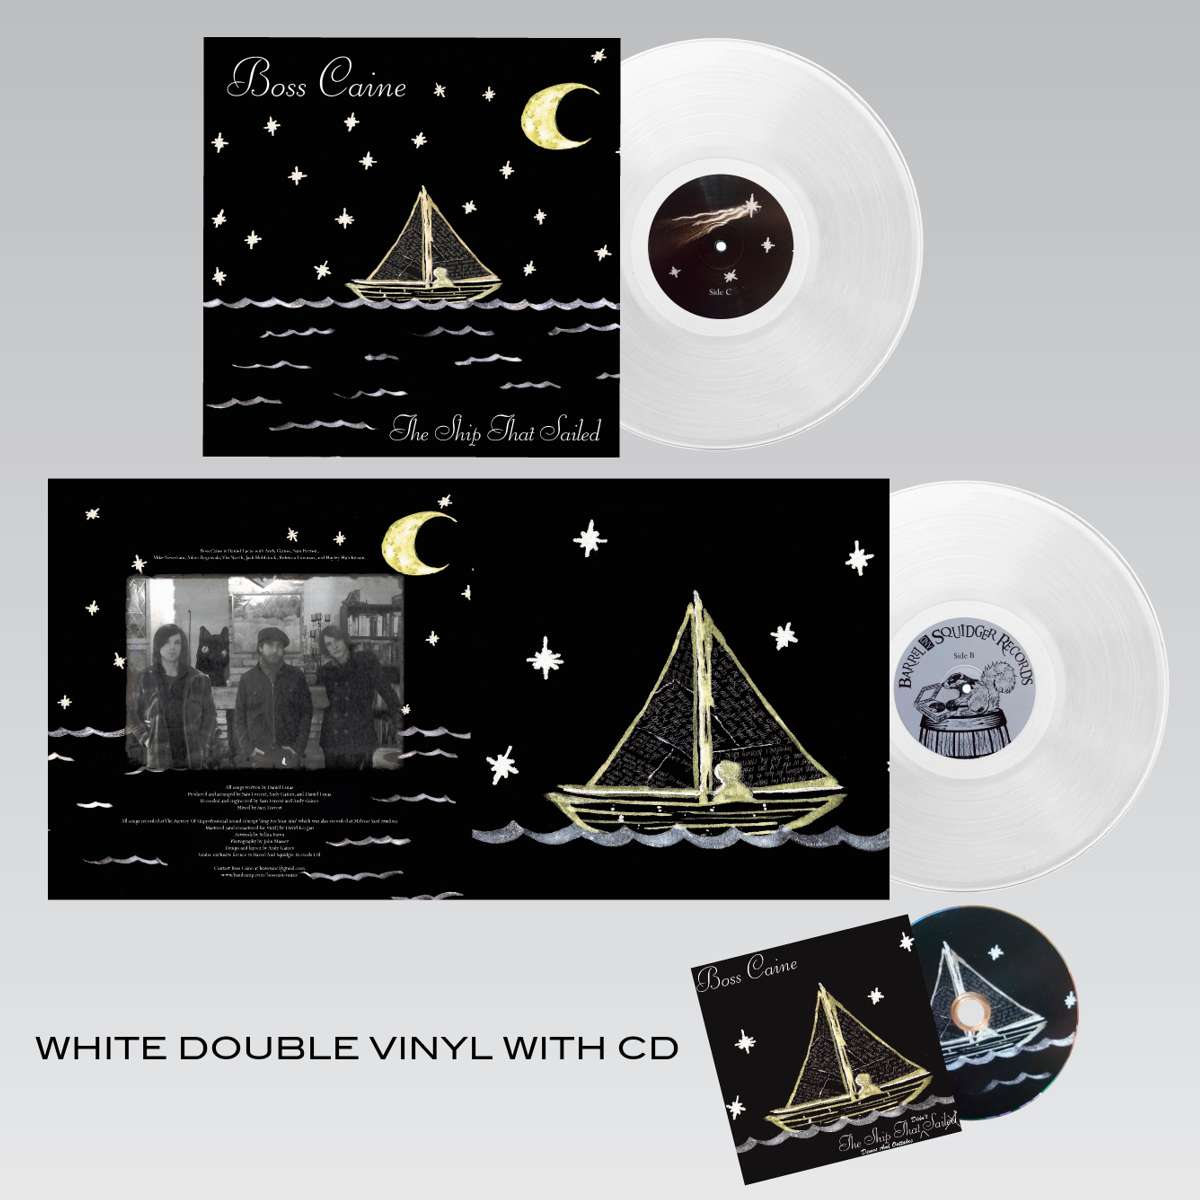 Boss Caine - The Ship That Sailed - Double White Vinyl LP + CD - Barrel And Squidger Records